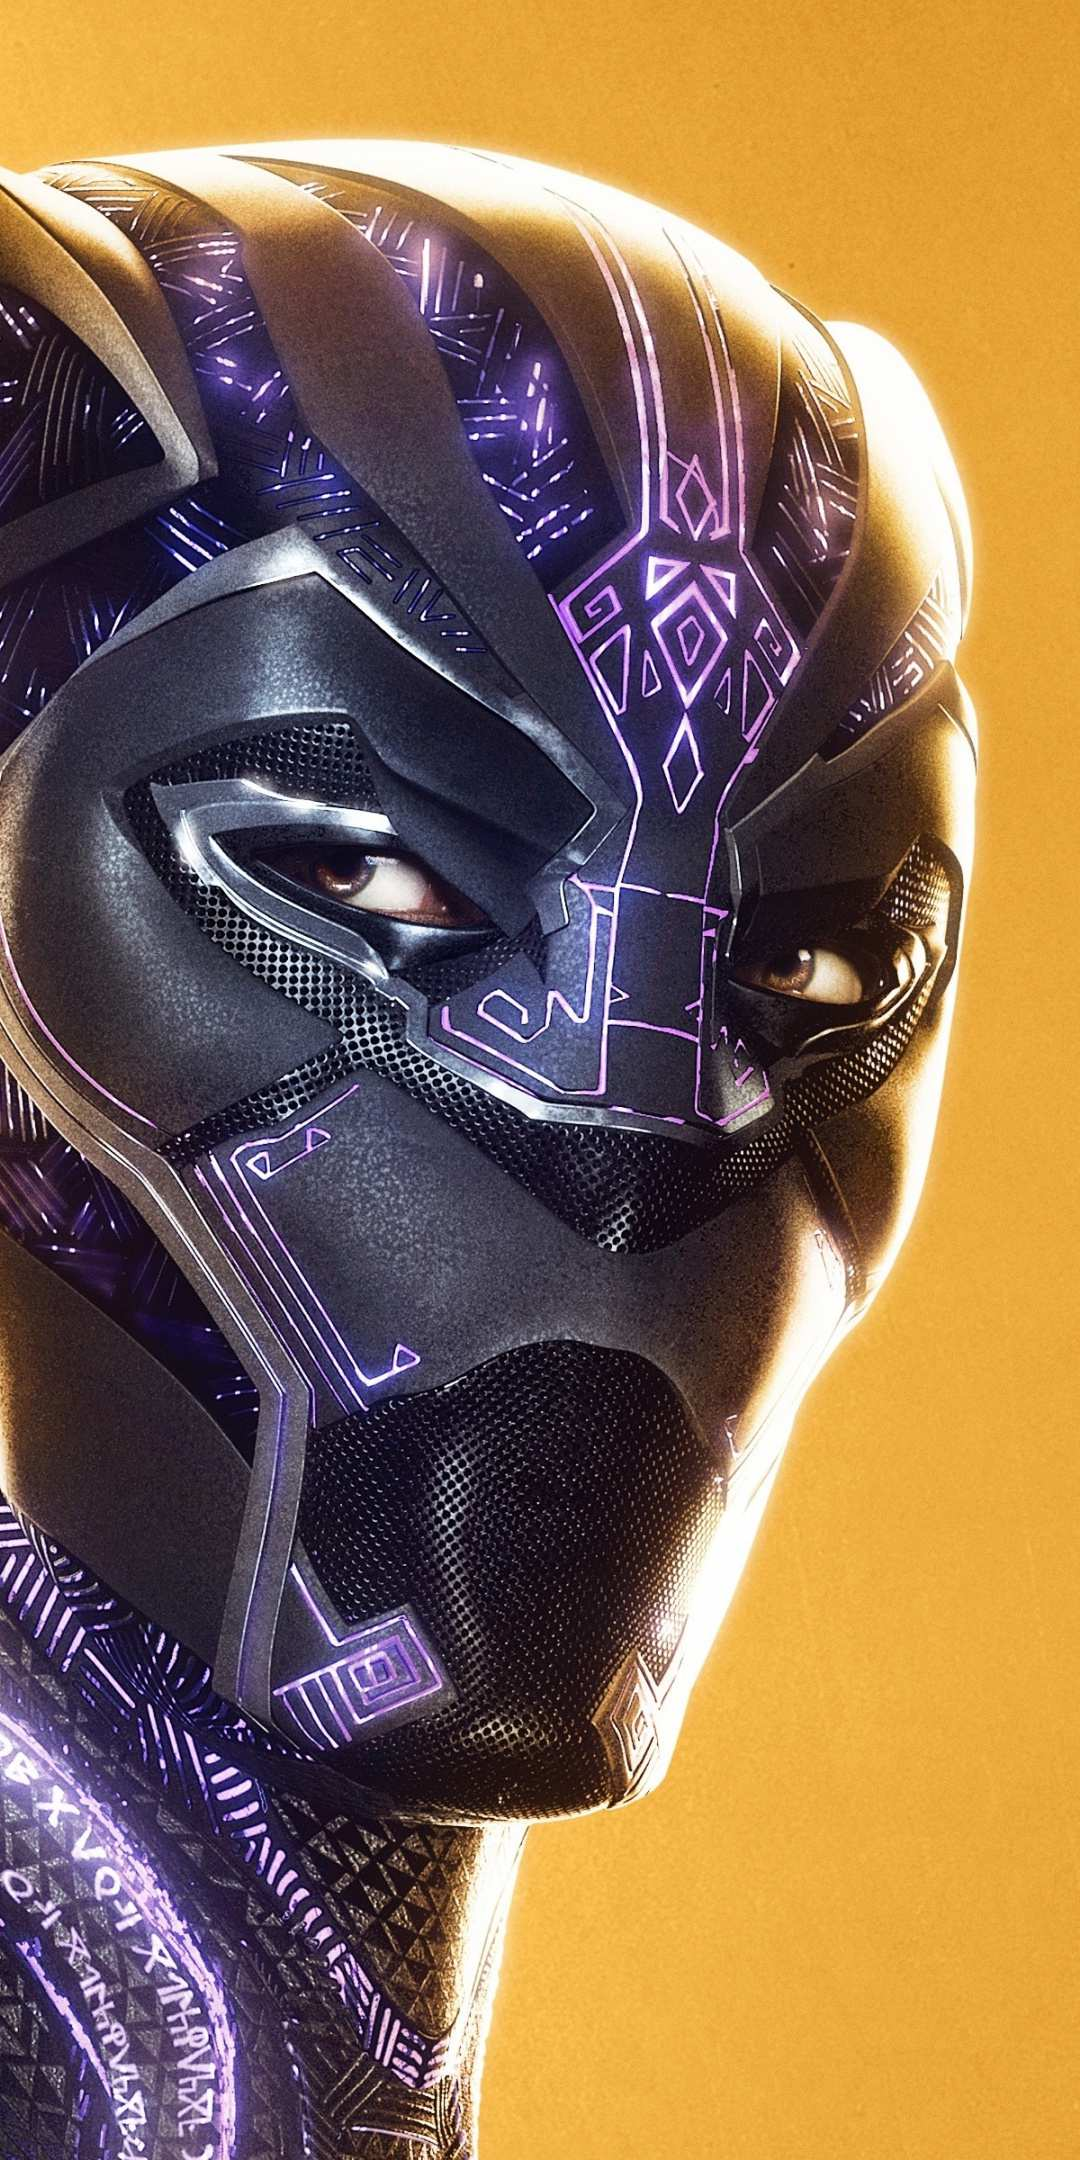 Black panther marvel comics avengers annihilation iPhone Wallpaper